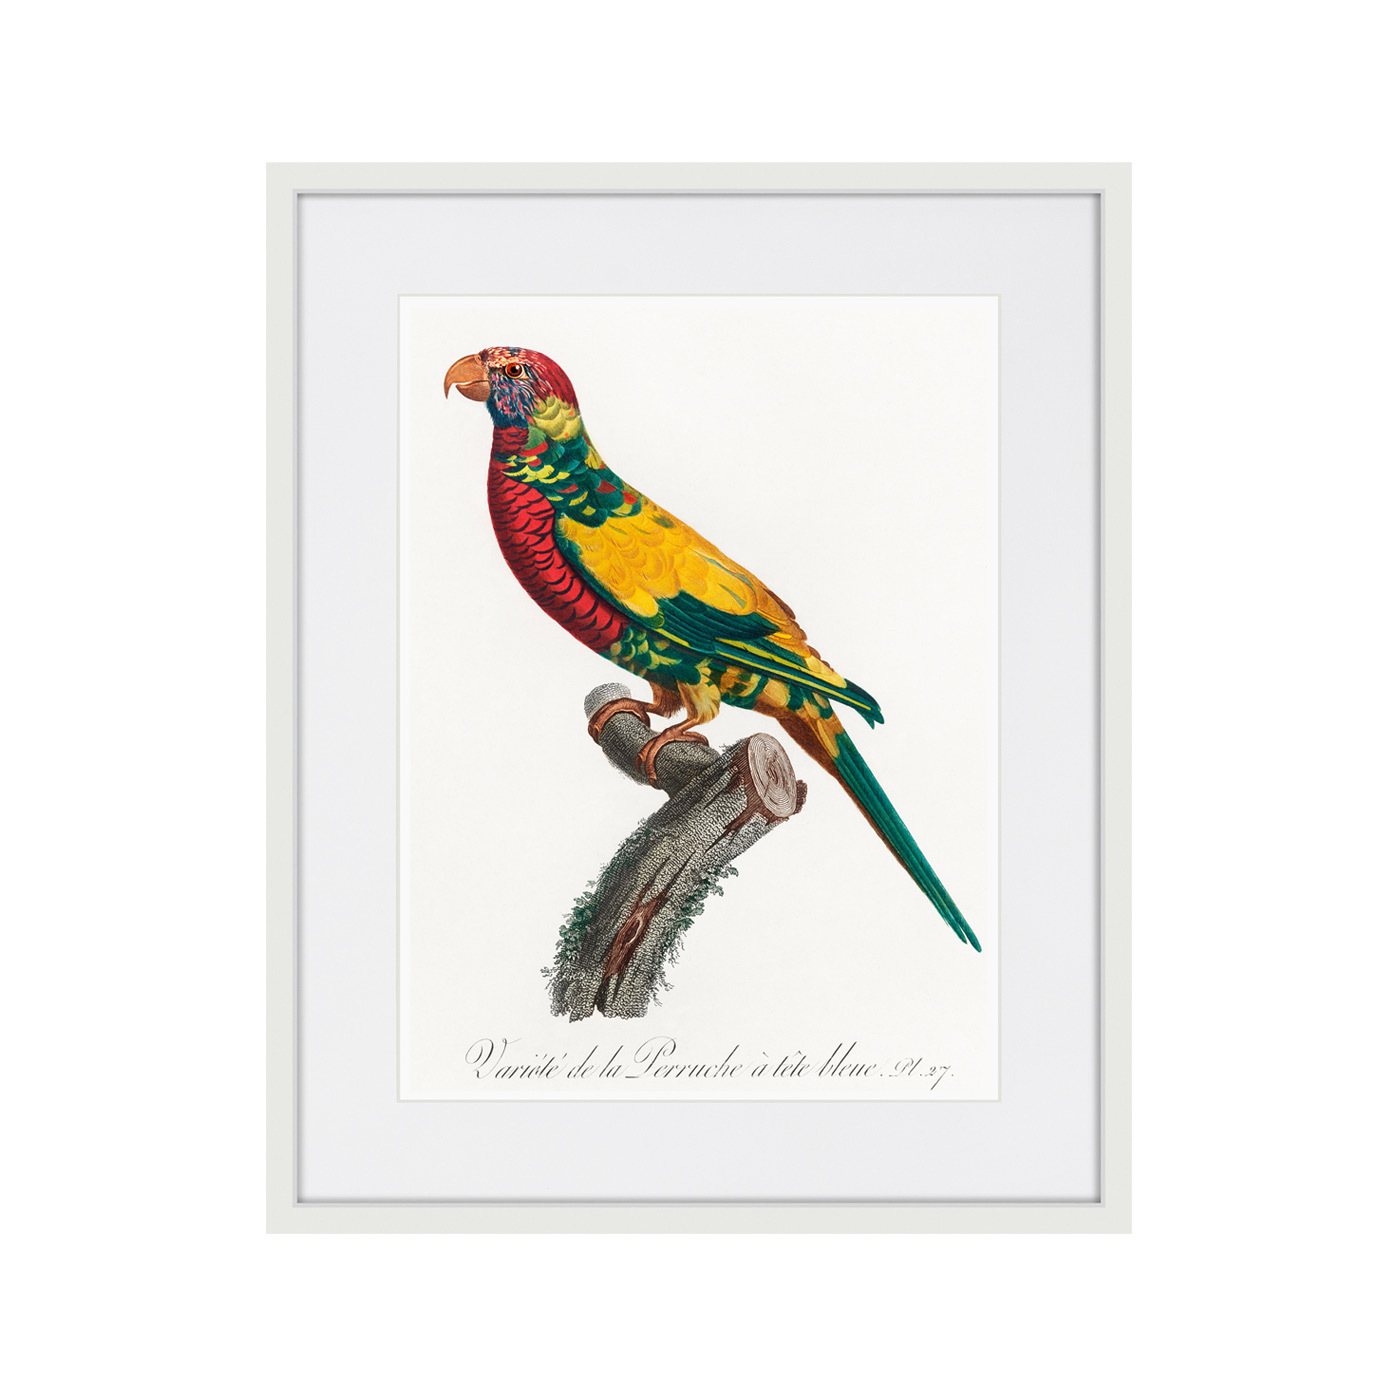 Beautiful parrots №7, 1872г.